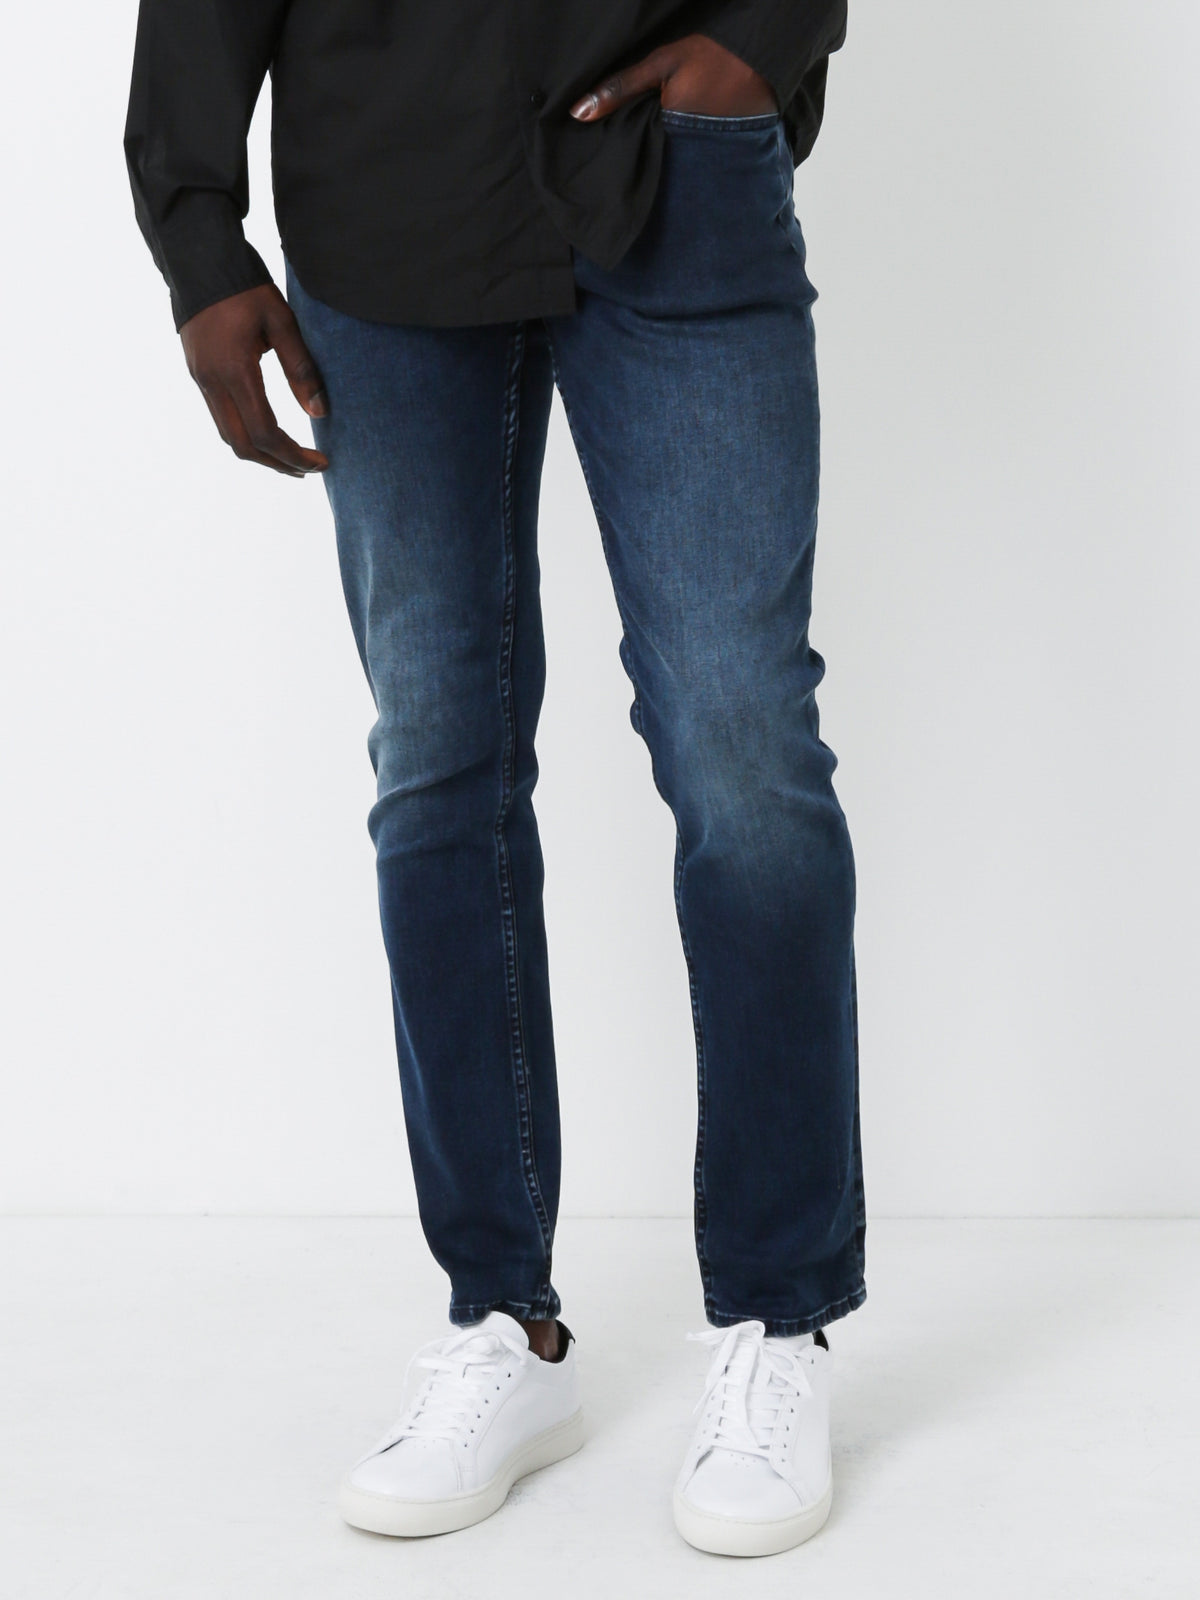 Drill ADB 32 Jeans in Blue Denim